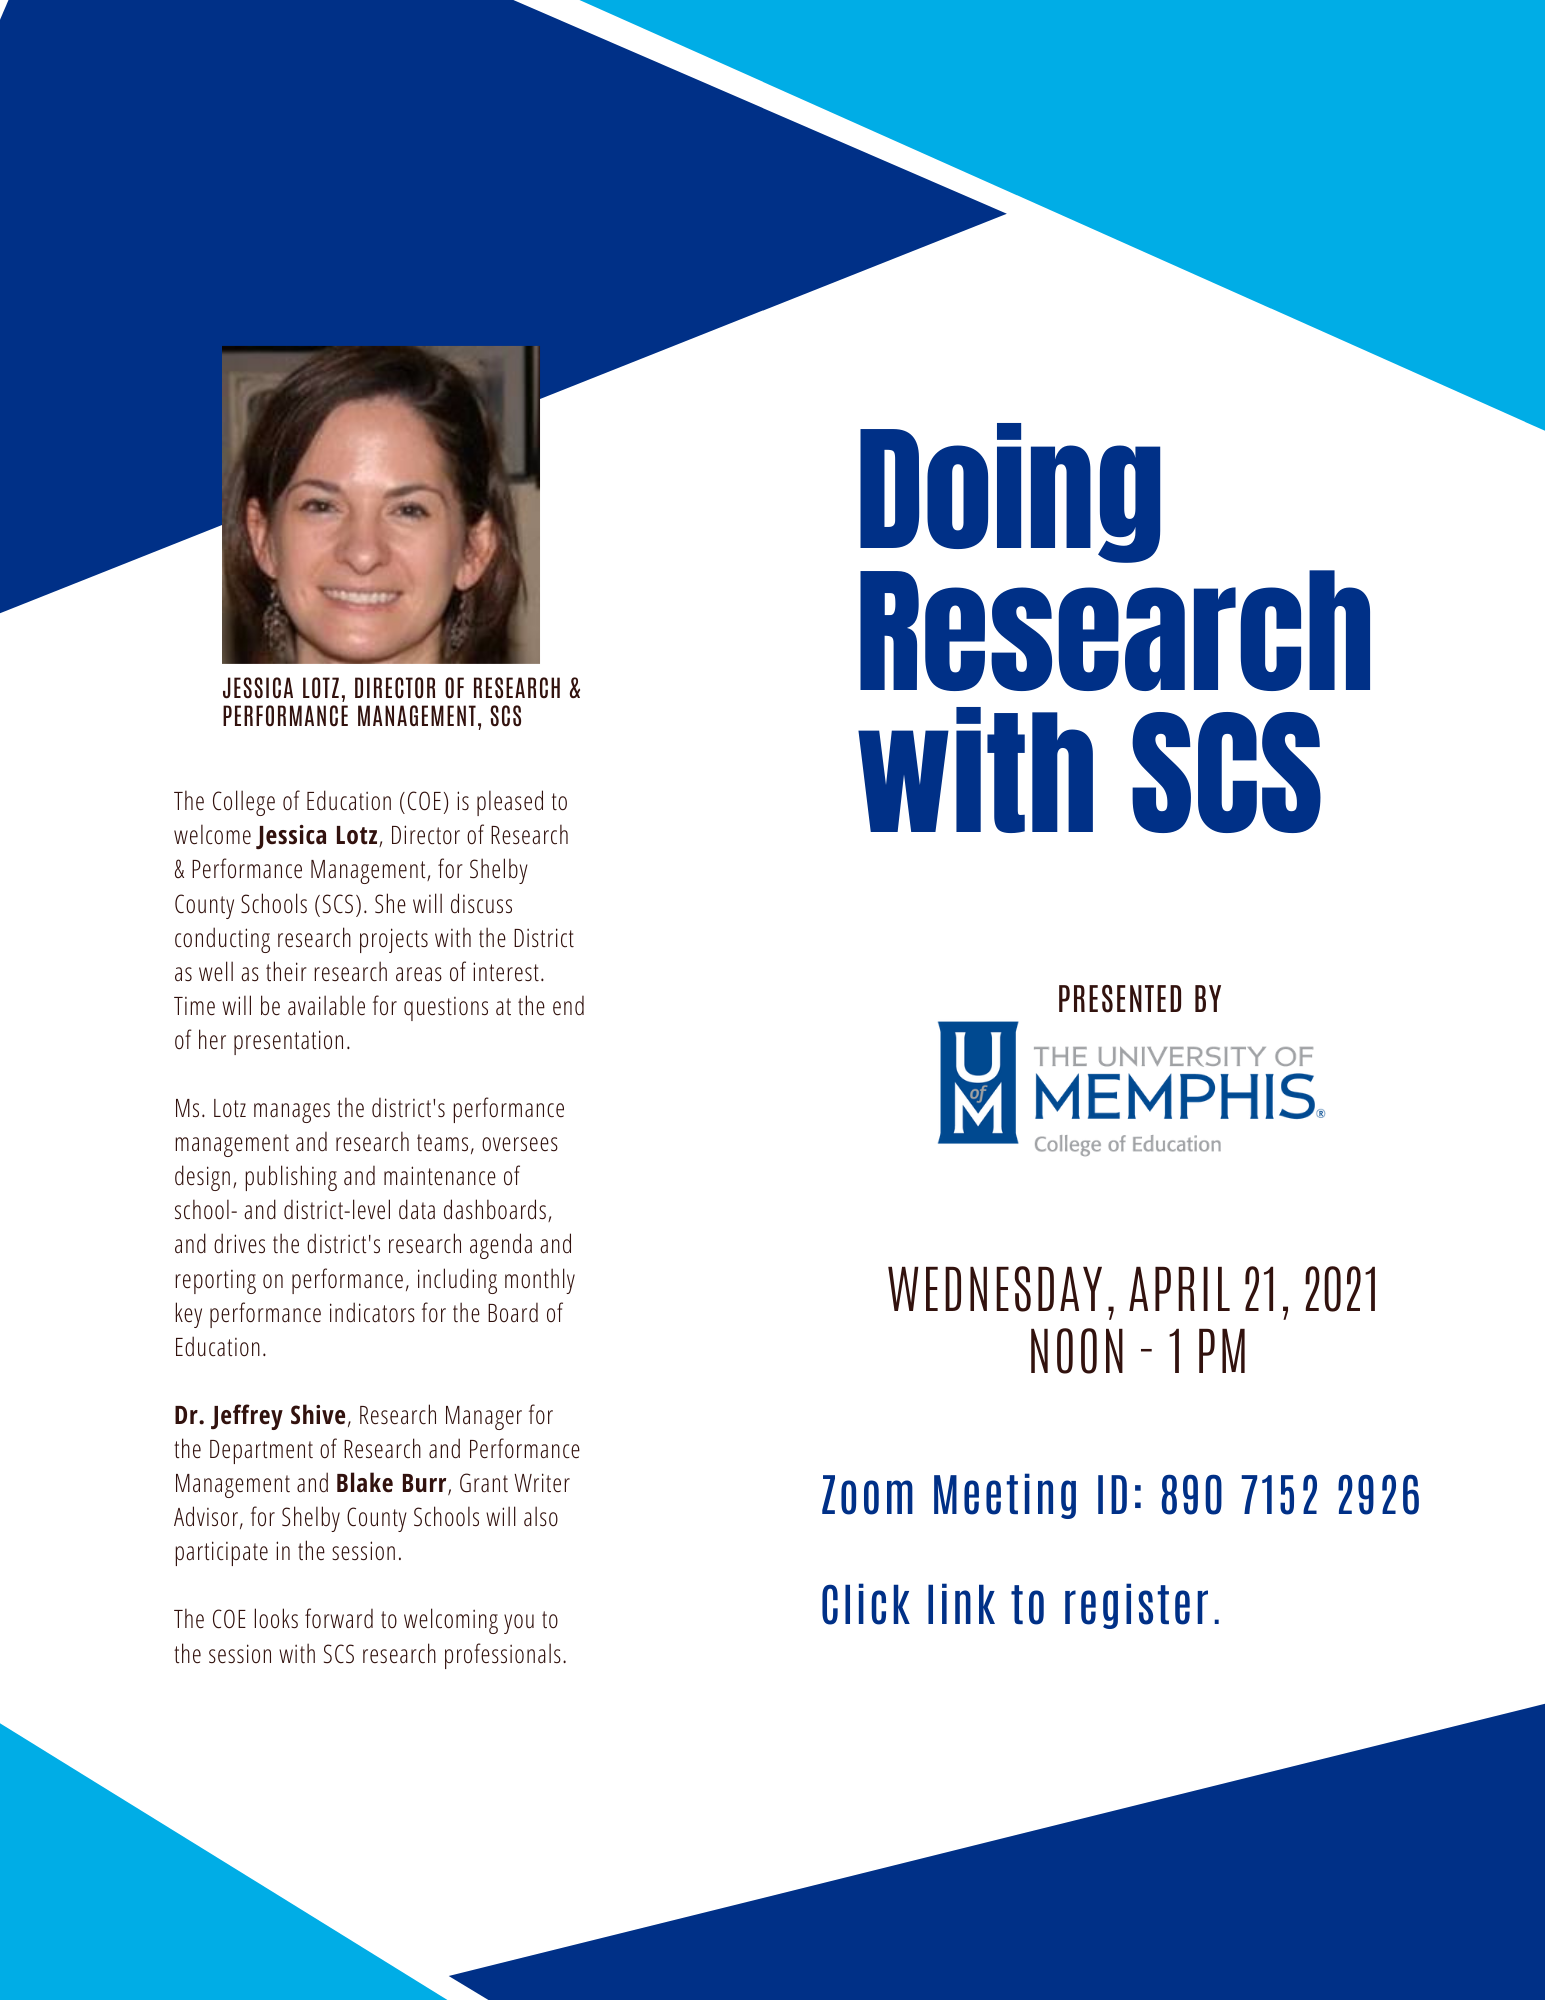 Doing Research with SCS with Jessica Lotz, Director of Research at SCS on April 21, 2021 via zoom. Click the link to register.